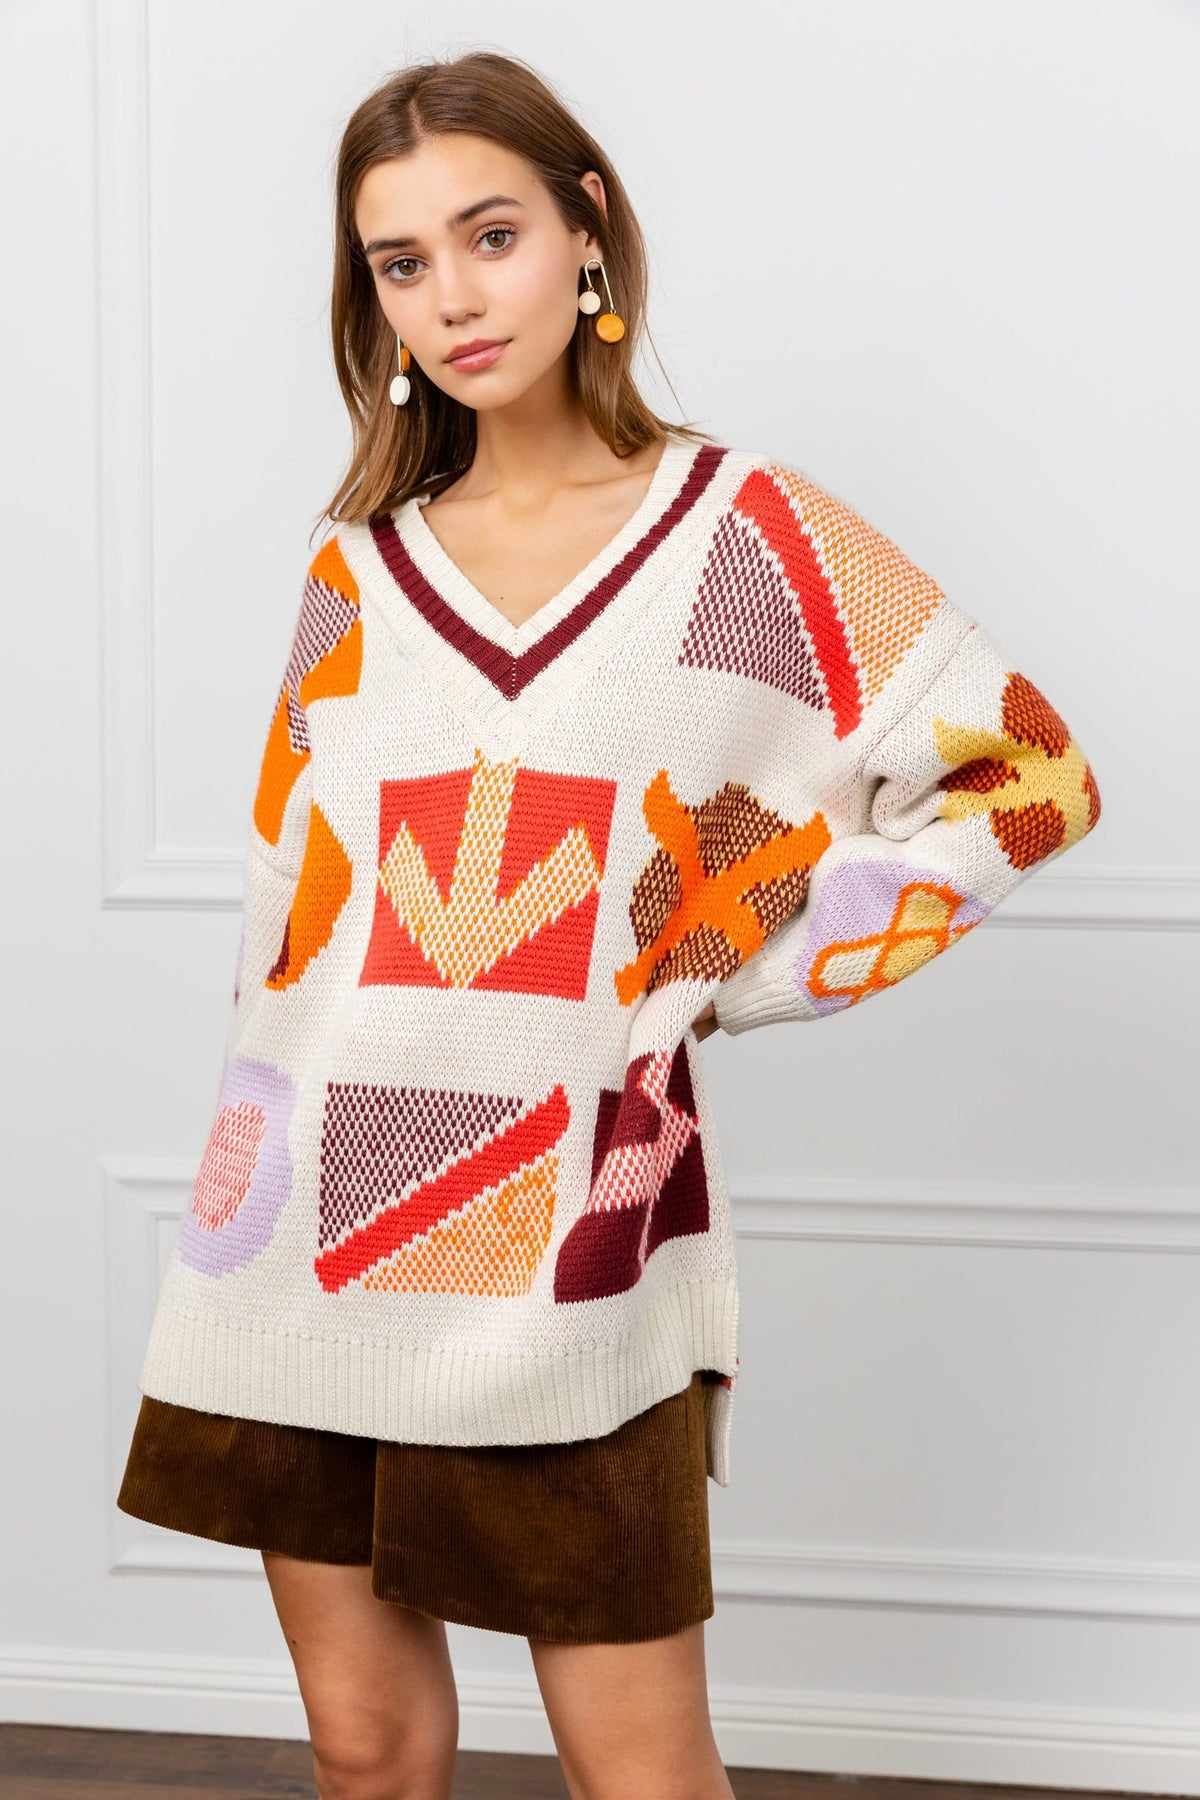 Oversize White Sweater with Orange knitted Symbols | J.ING Women's Knitwear